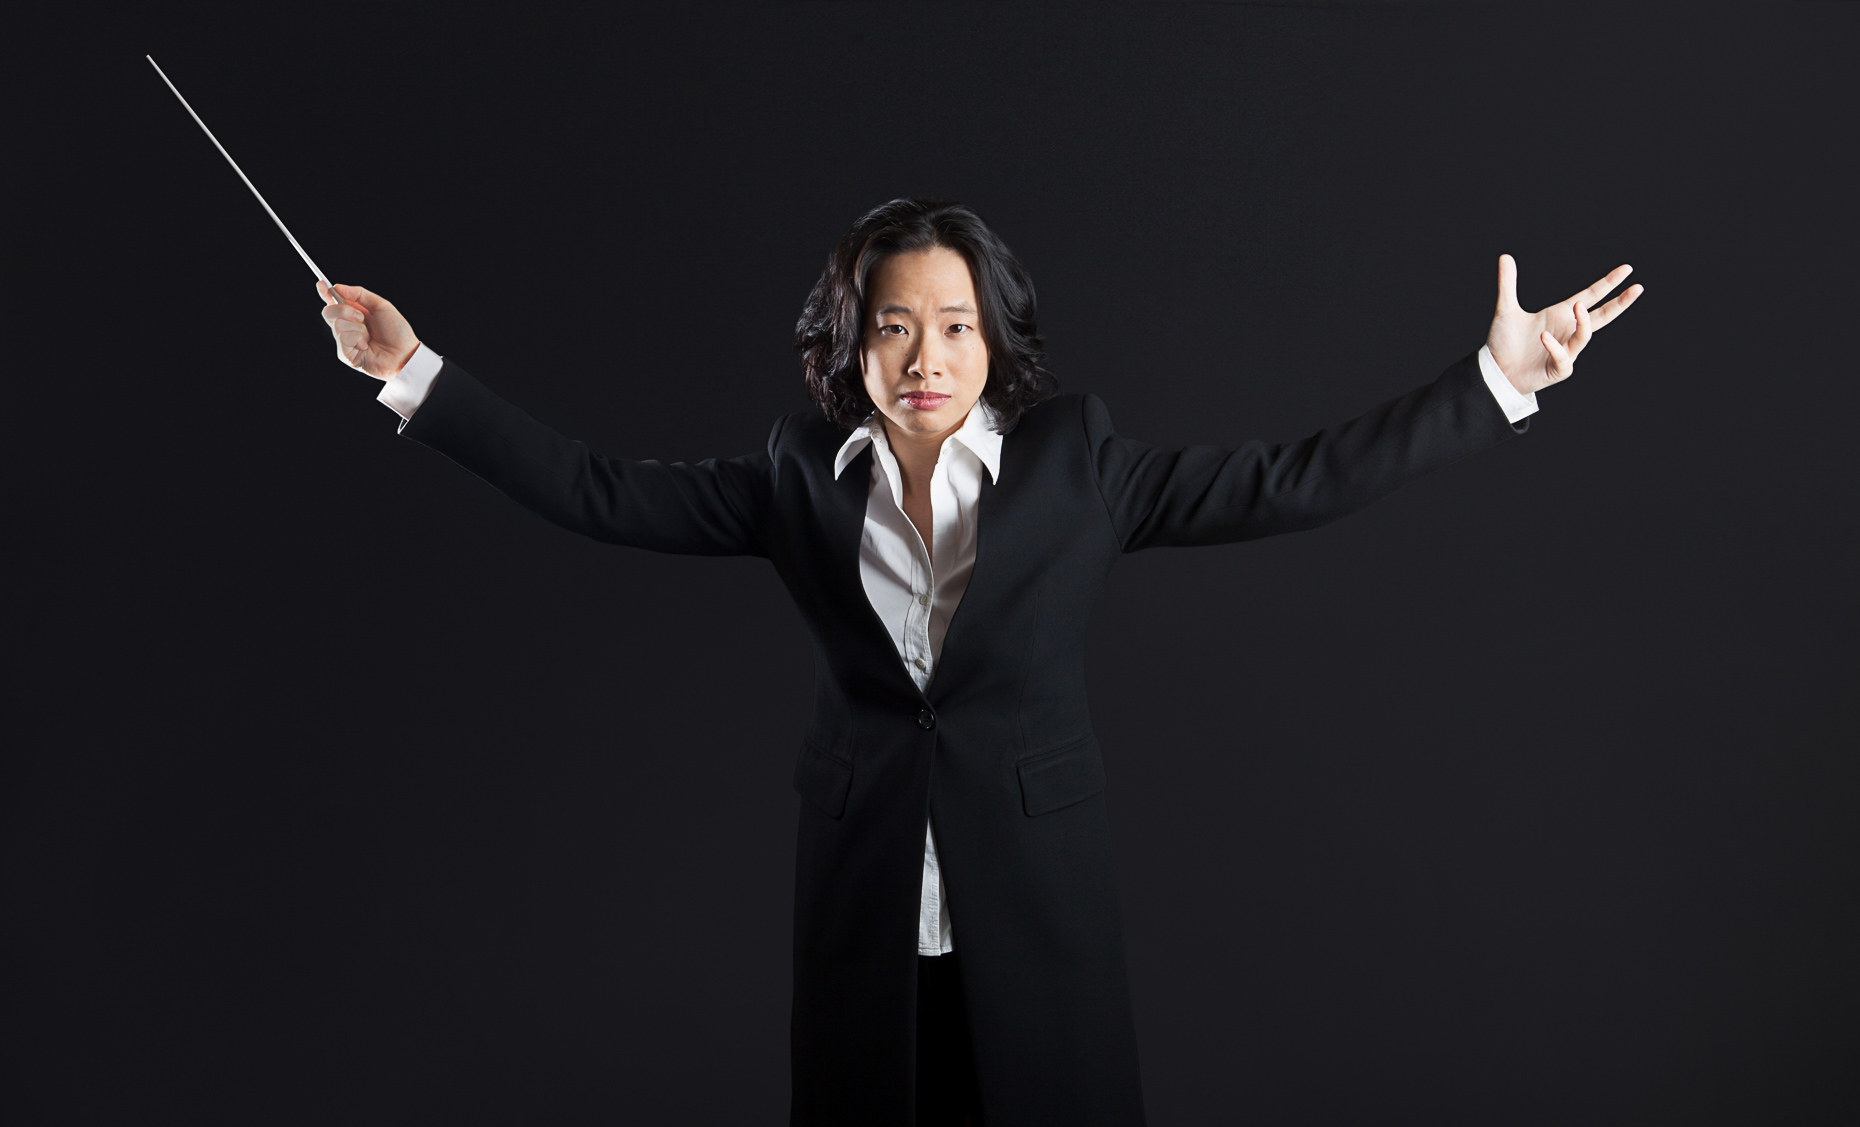 032_0001_carolyn_kuan_conductor_hso_portrait_photo_library_commercial_portrait_corporate_editorial_advertising__portrait_photographer_hartford_ct_photojane_photojane